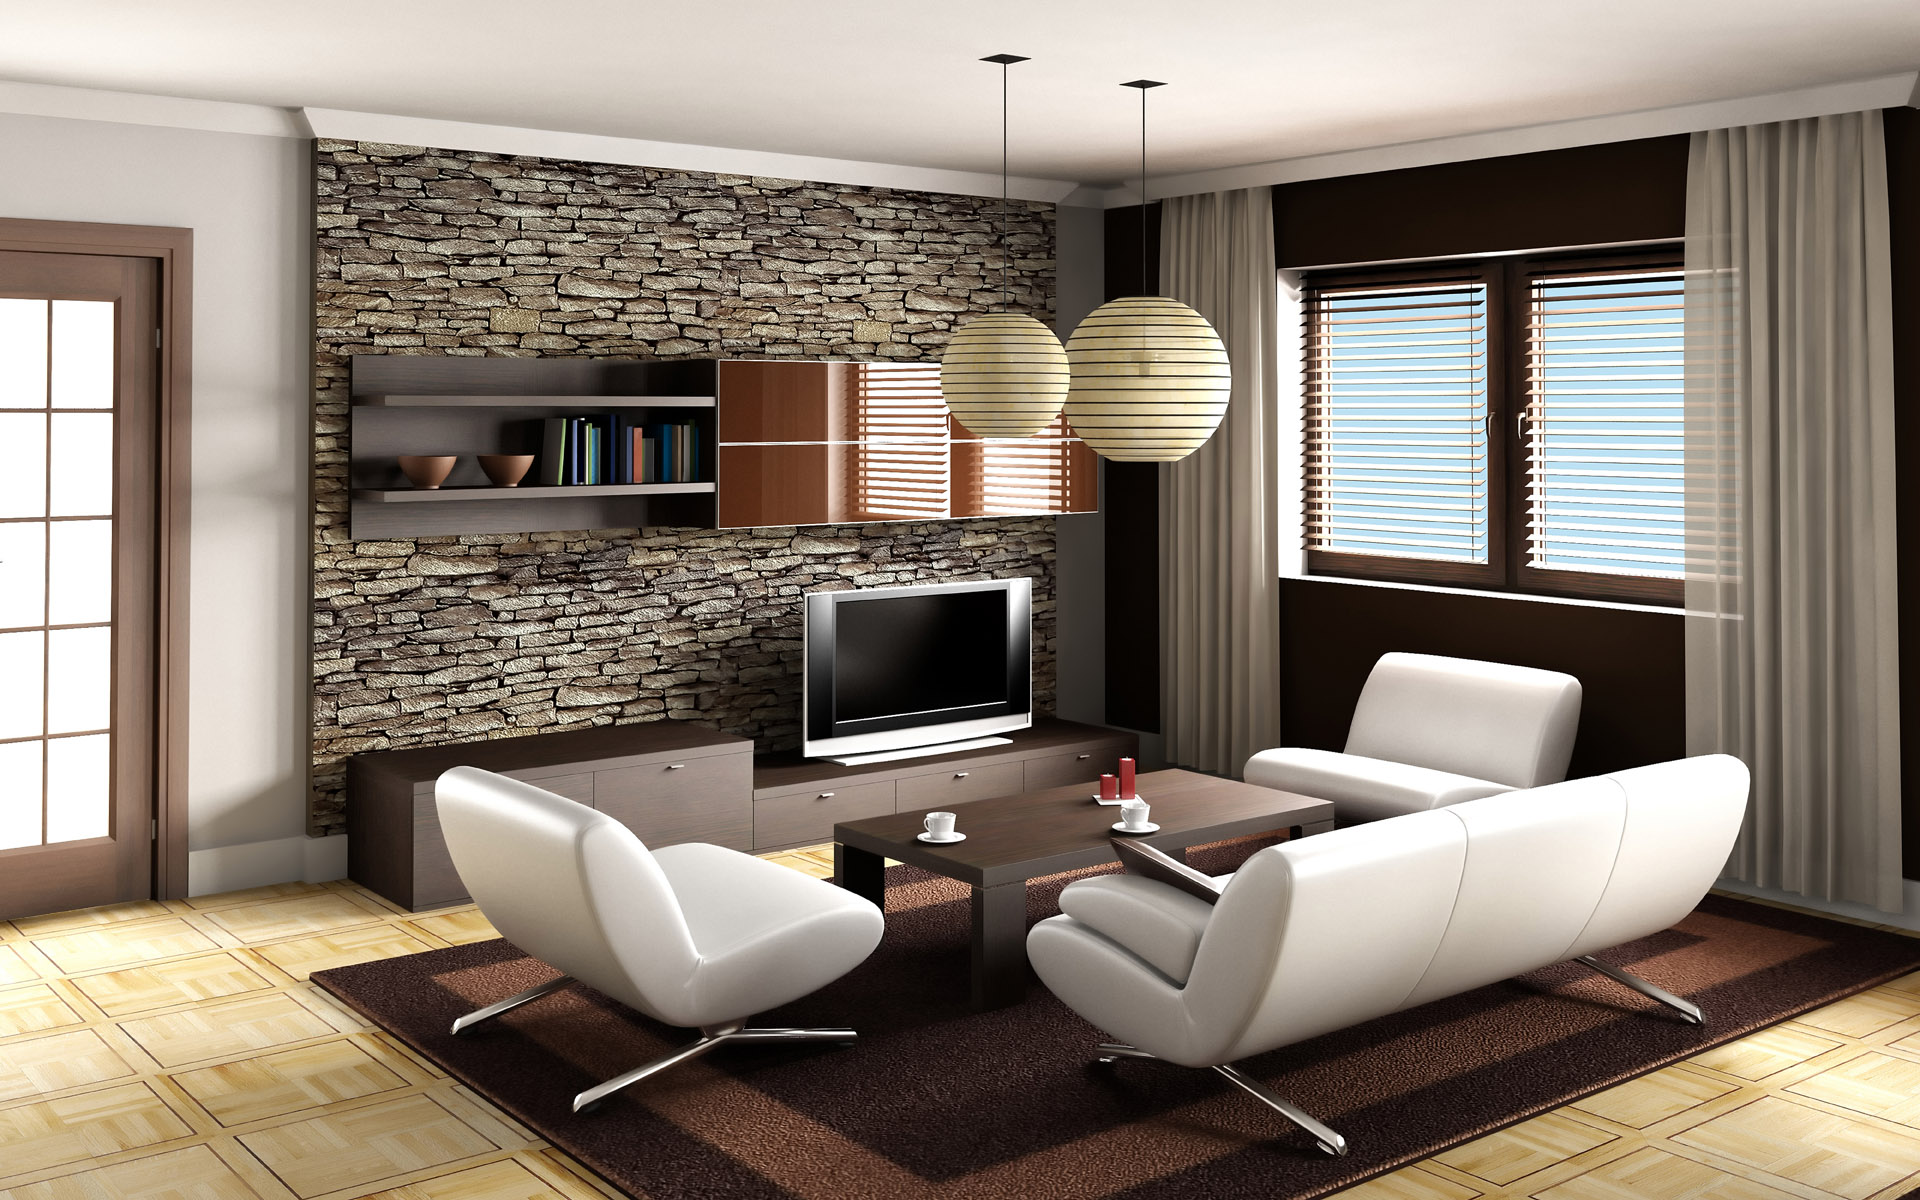 30 Modern Luxury Living Room Design Ideas – Wow Decor